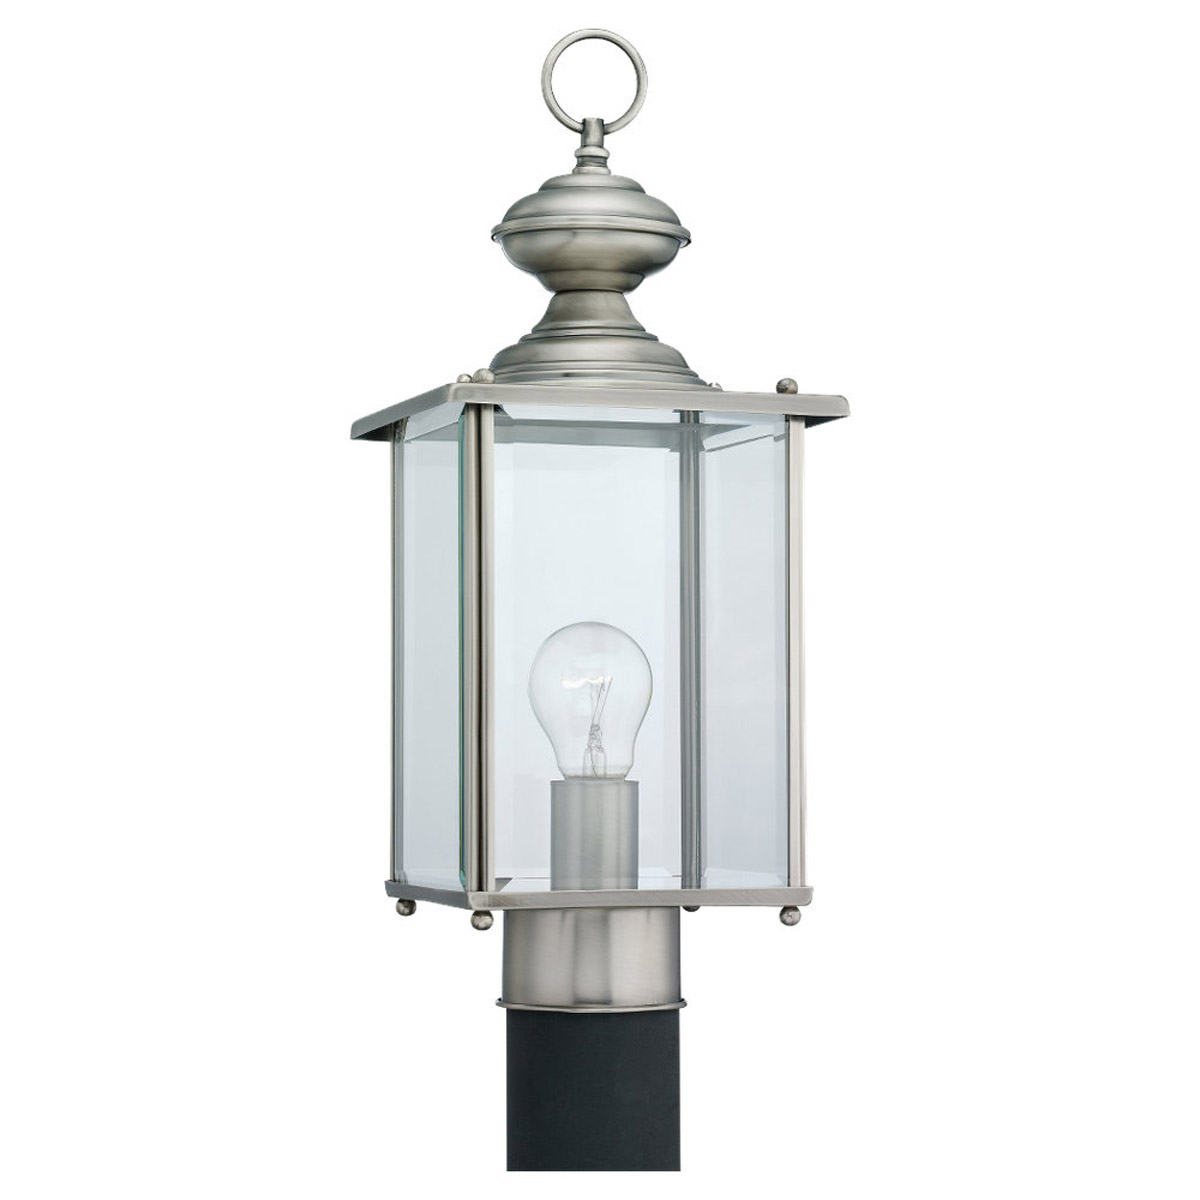 Sea Gull Lighting Jamestowne 1 Light Outdoor Post Lantern in Antique Brushed Nickel 8257-965